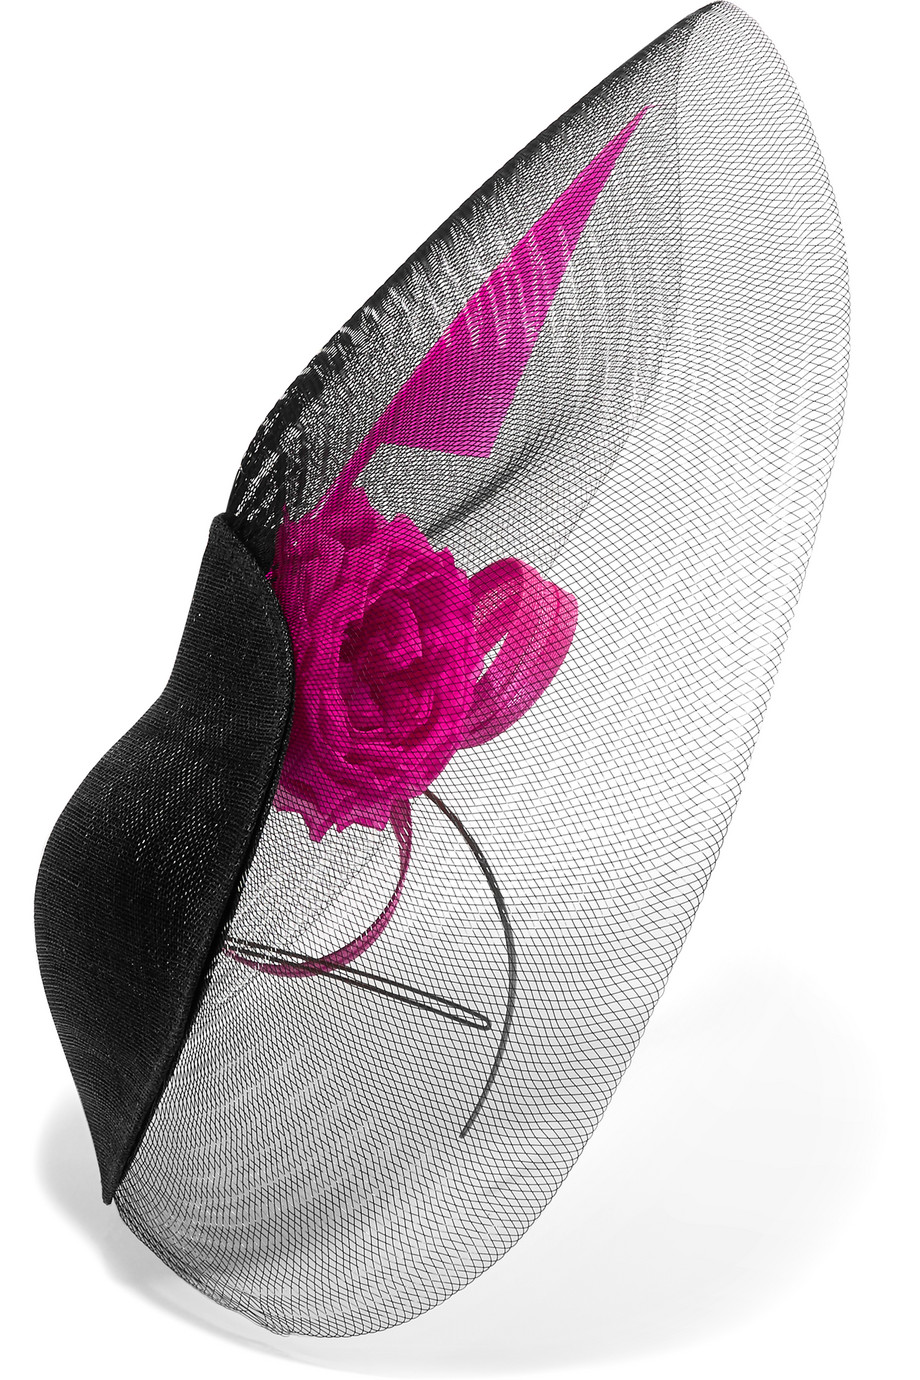 Philip Treacy Sinamay and Buntal Straw Mesh Headpiece, Black/Pink, Women's